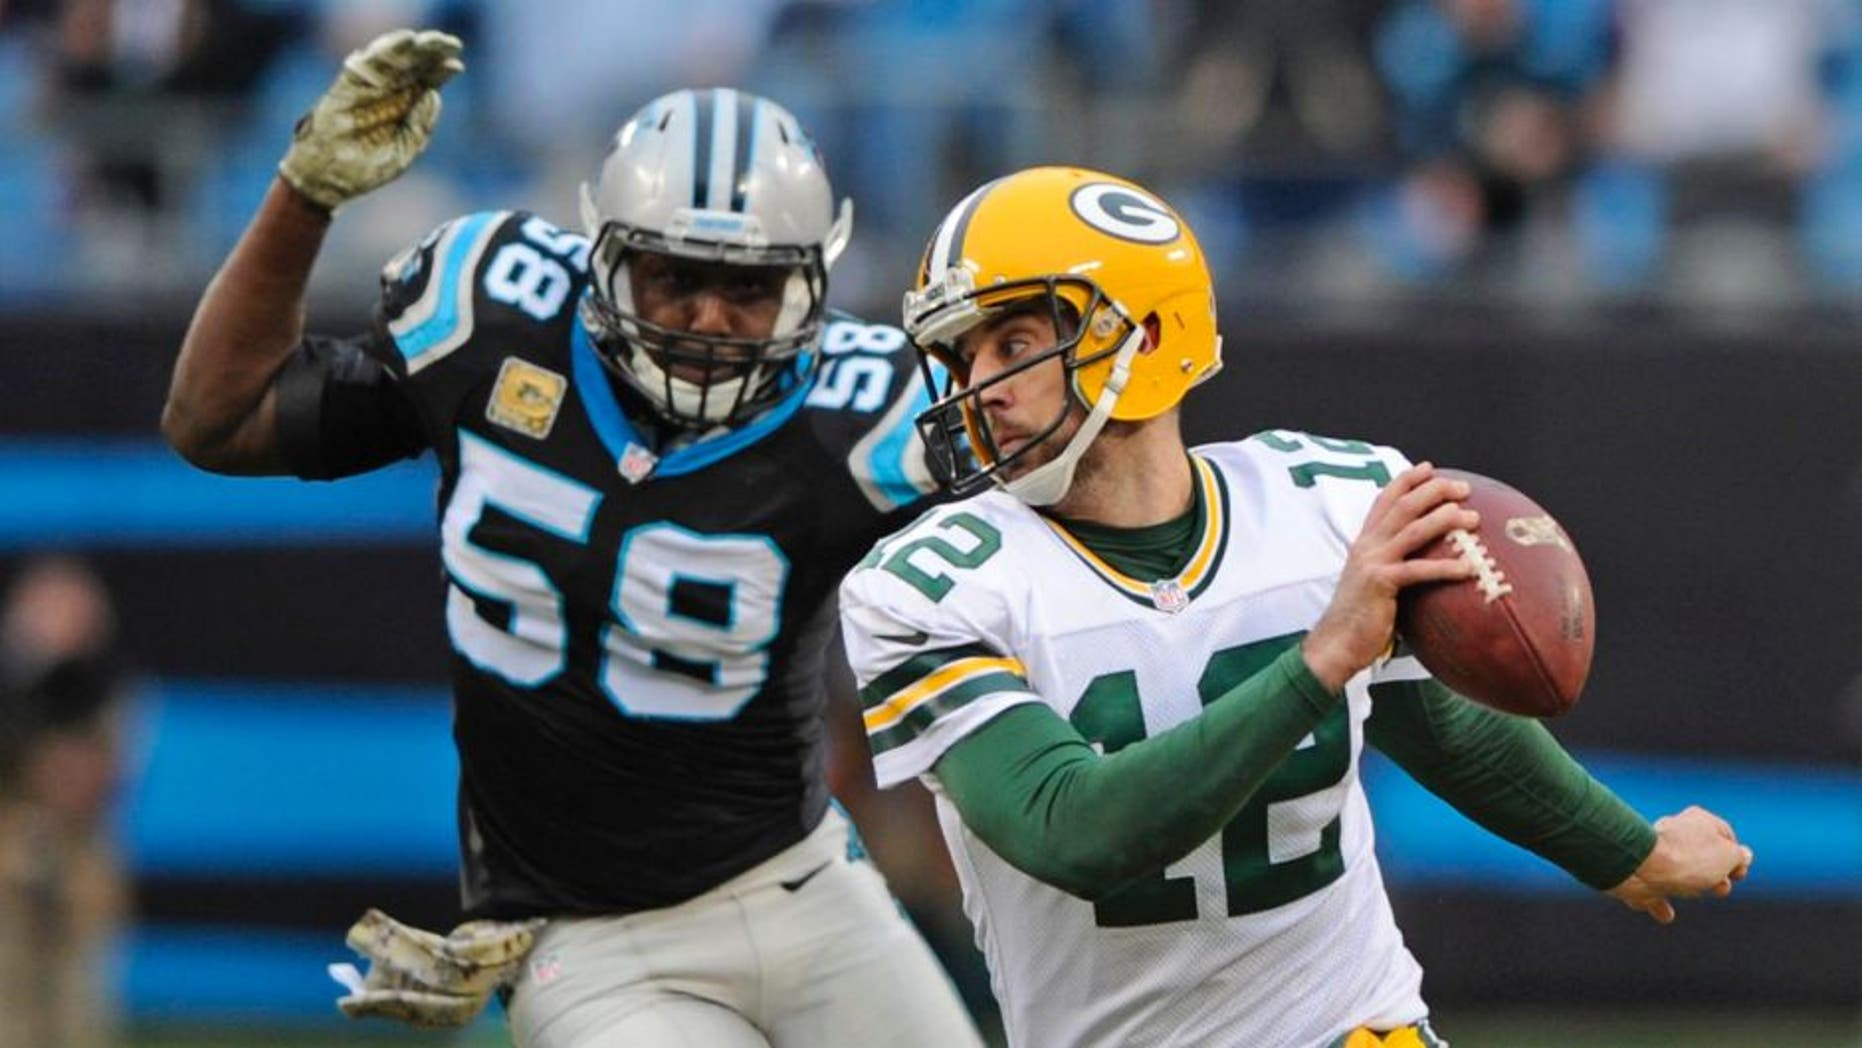 The Green Bay Packers' Aaron Rodgers scrambles as the Carolina Panthers' Thomas Davis pursues in the second half of an NFL football game in Charlotte, N.C., on Sunday, Nov. 8, 2015.